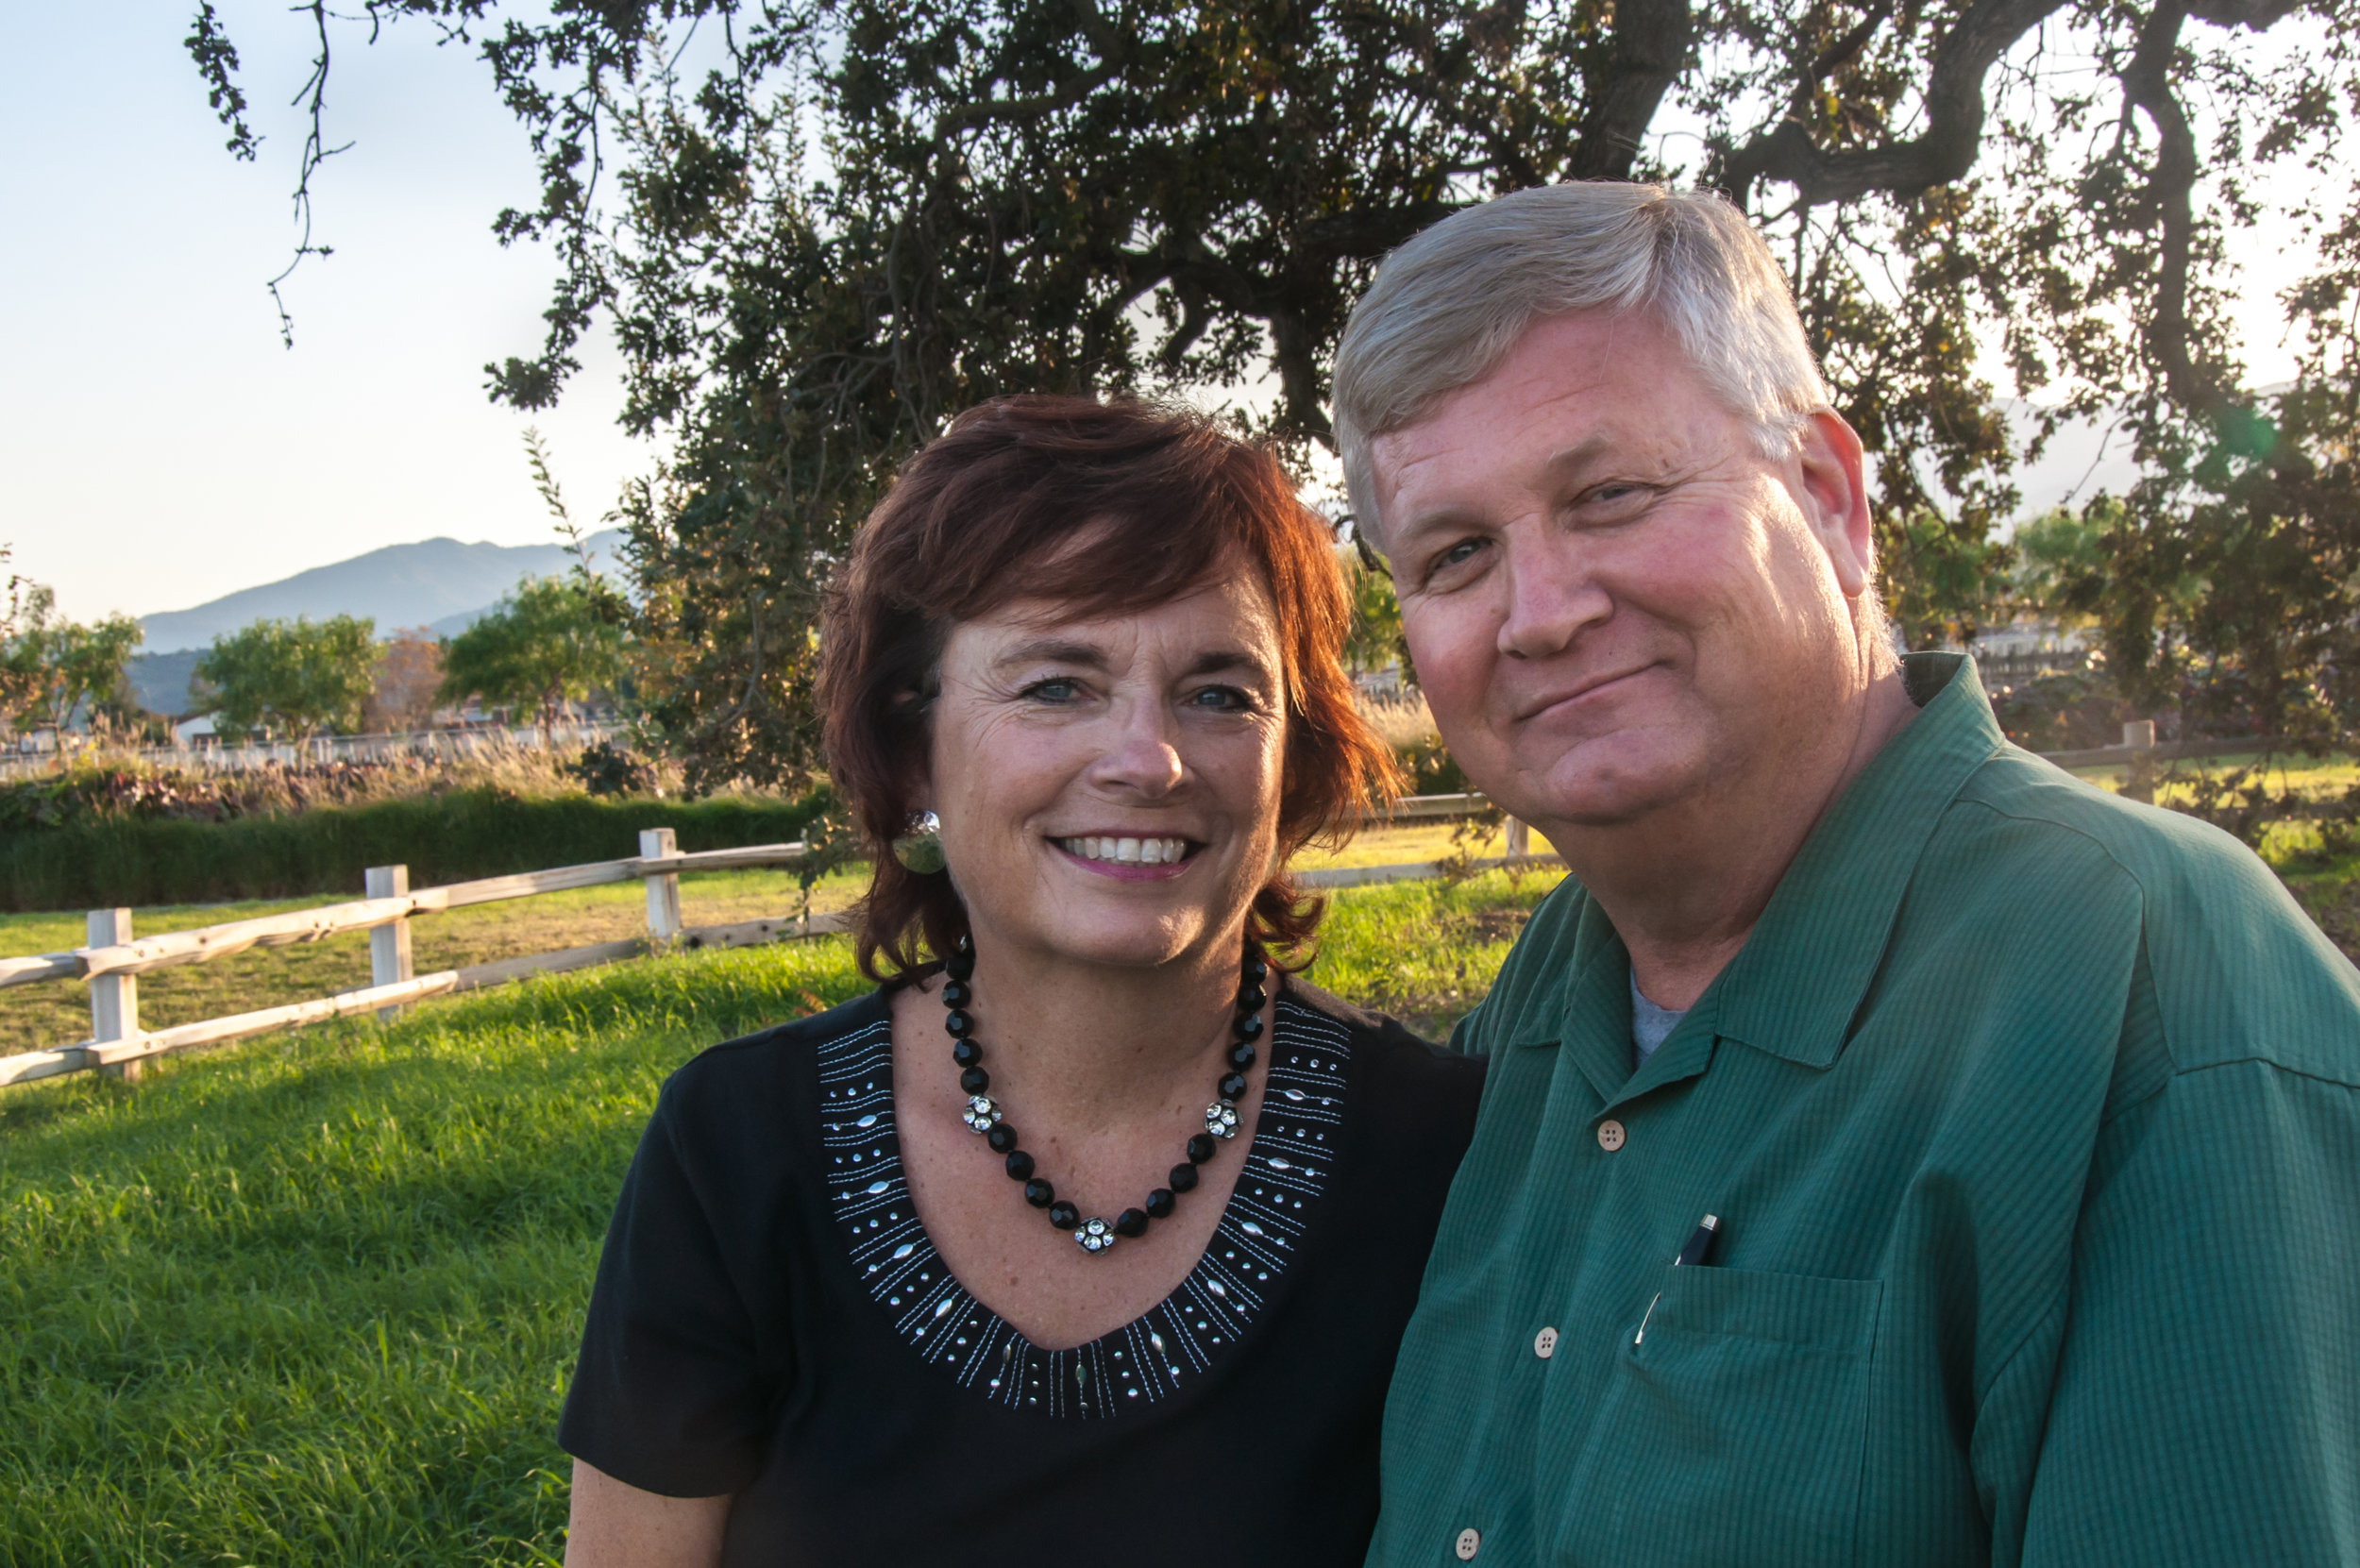 Kevin and Luann